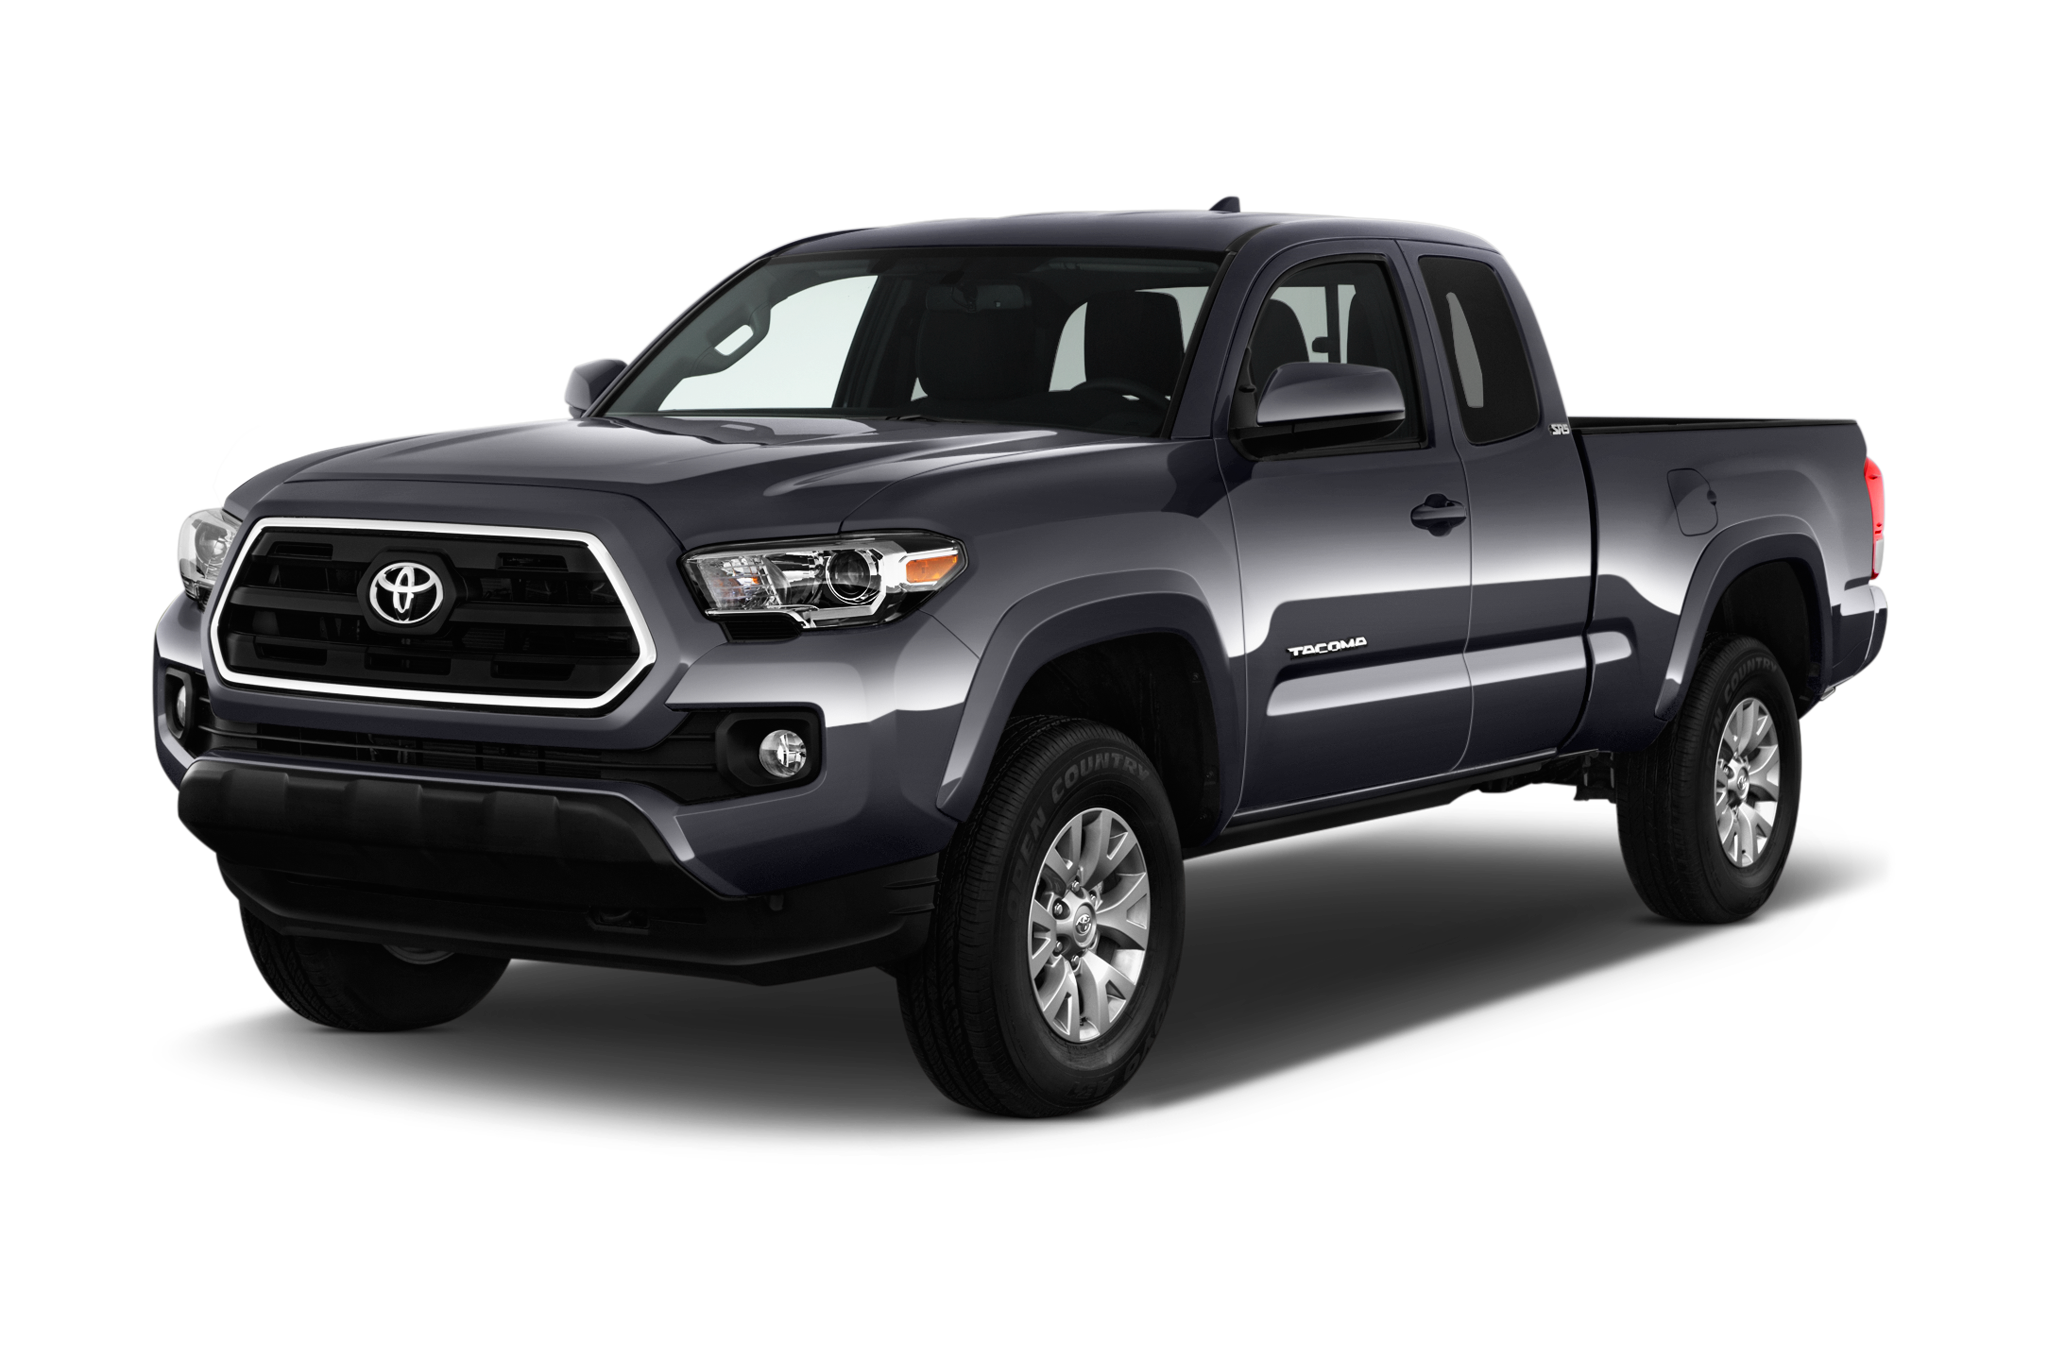 2016 toyota tacoma engine transmision and performance msn autos. Black Bedroom Furniture Sets. Home Design Ideas